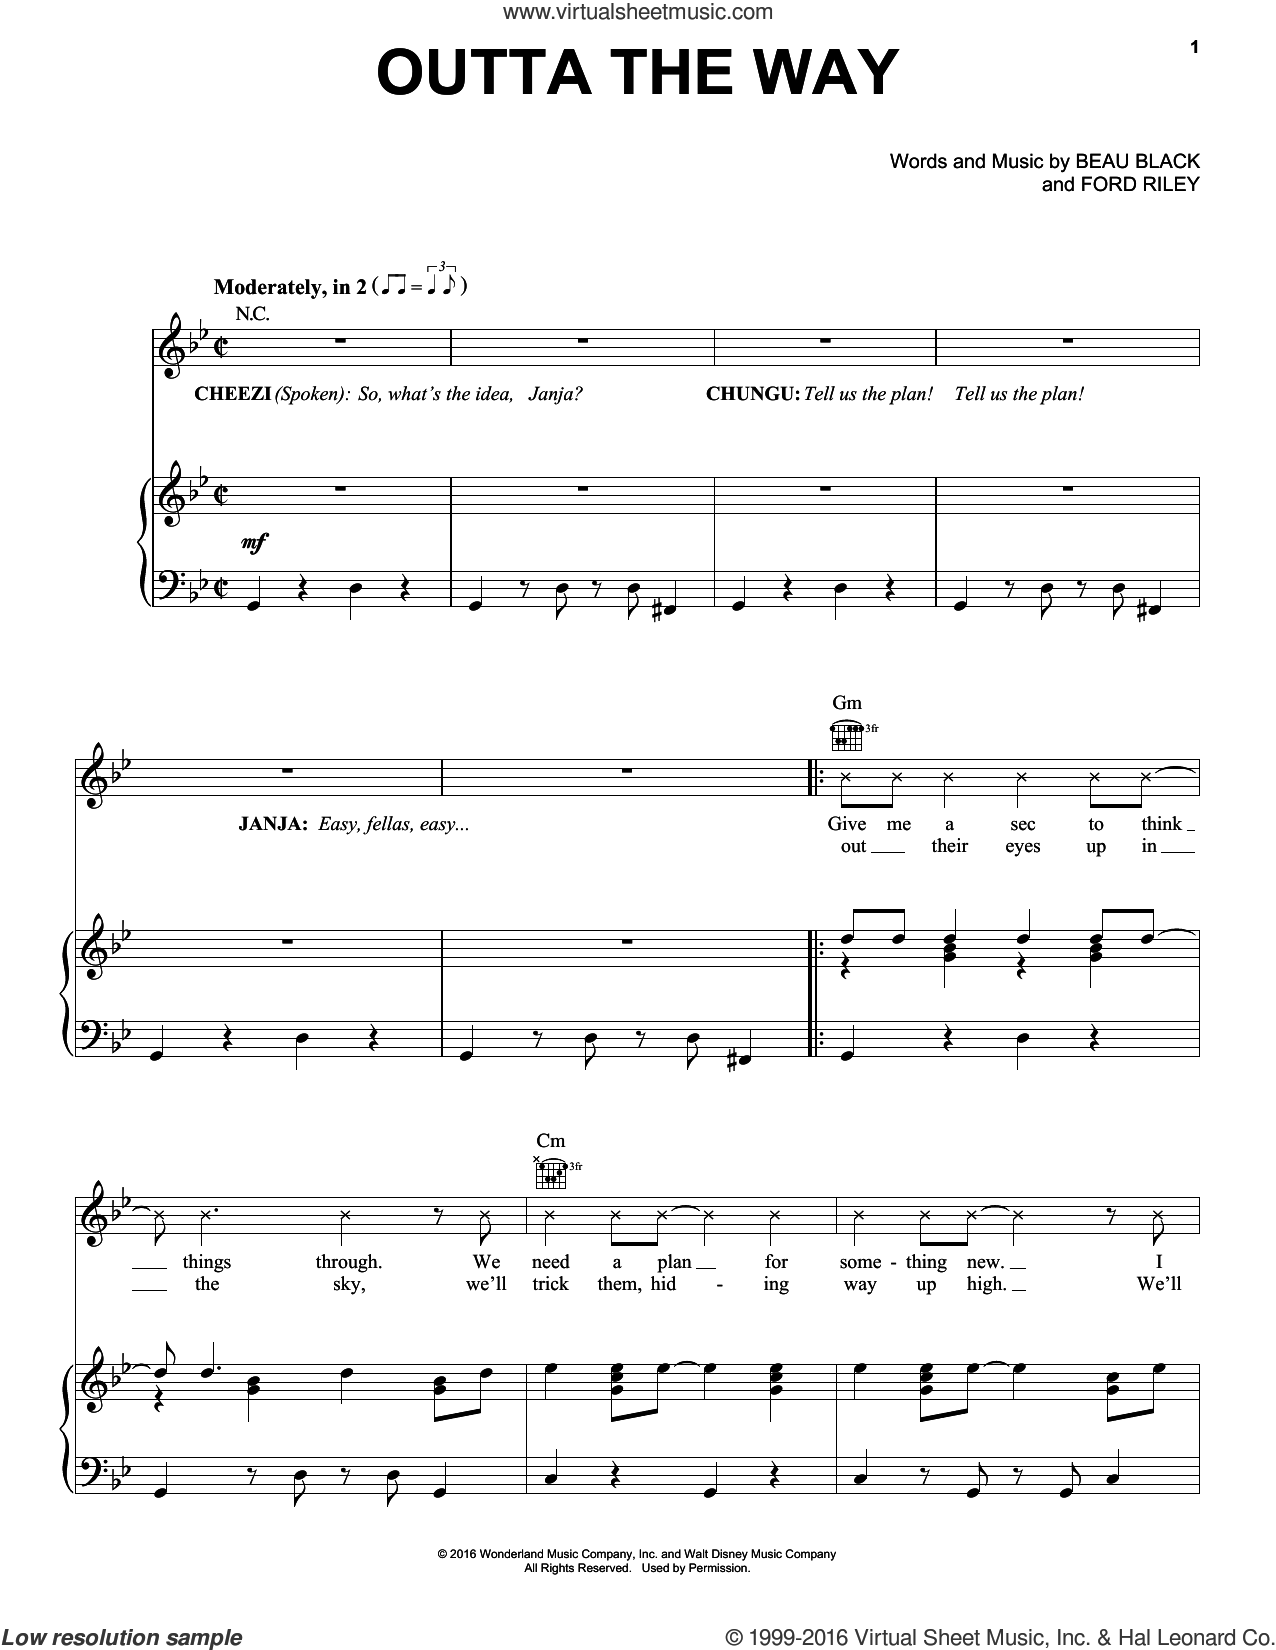 Outta The Way sheet music for voice, piano or guitar by Beau Black and Ford Riley, intermediate voice, piano or guitar. Score Image Preview.